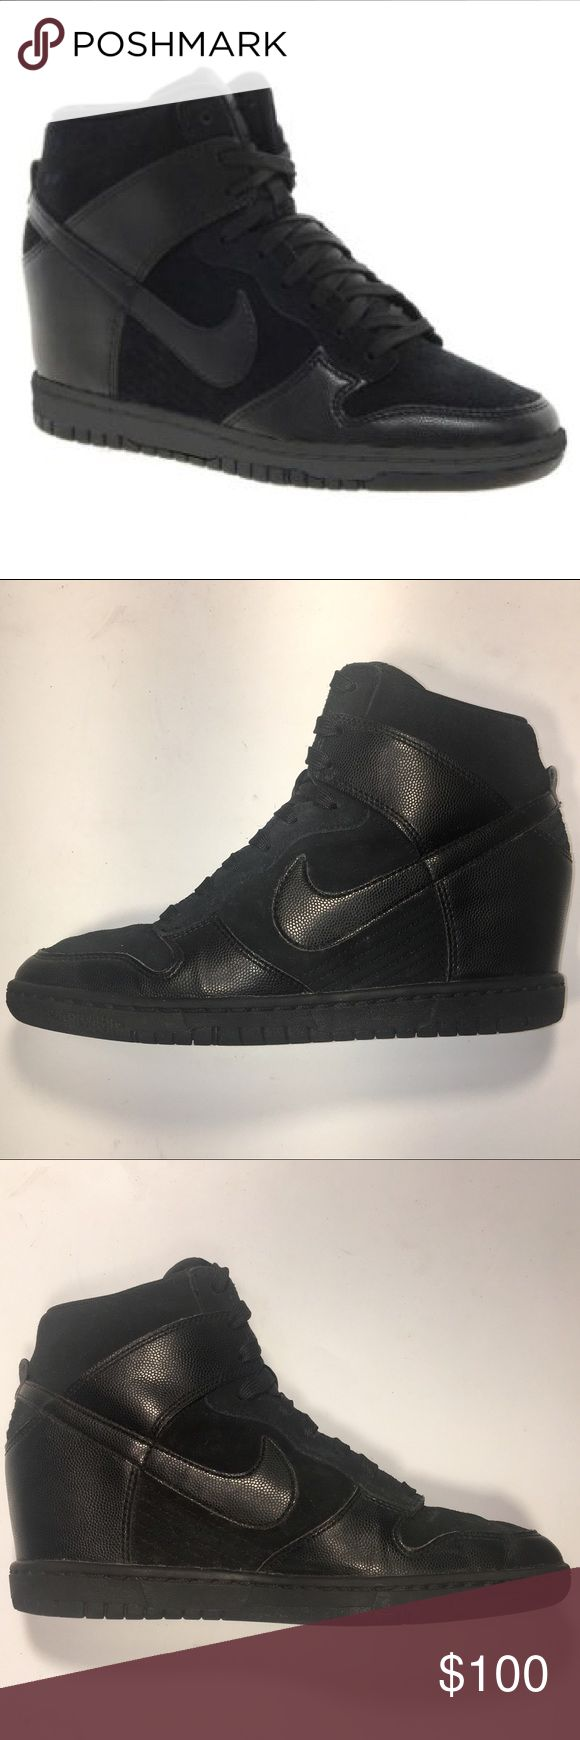 """$190 Nike Dunk Sky High Black Wedge Trainers 8 $190 Nike Dunk Sky High All Black Laced Wedge Trainers Size 8. Excellent Condition w/minimal wear as shown. •Photos are main description & show shoes w/ & w/o flash Featuring a concealed wedge heel, the Nike Dunk Sky Hi Shoe takes a legendary design to new heights. Premium leather define the upper & supportive overlays & court-inspired traction deliver a secure, stable ride. •Heel: 3"""" with 3/4"""" platform •Suede & Leather upper •Textile…"""